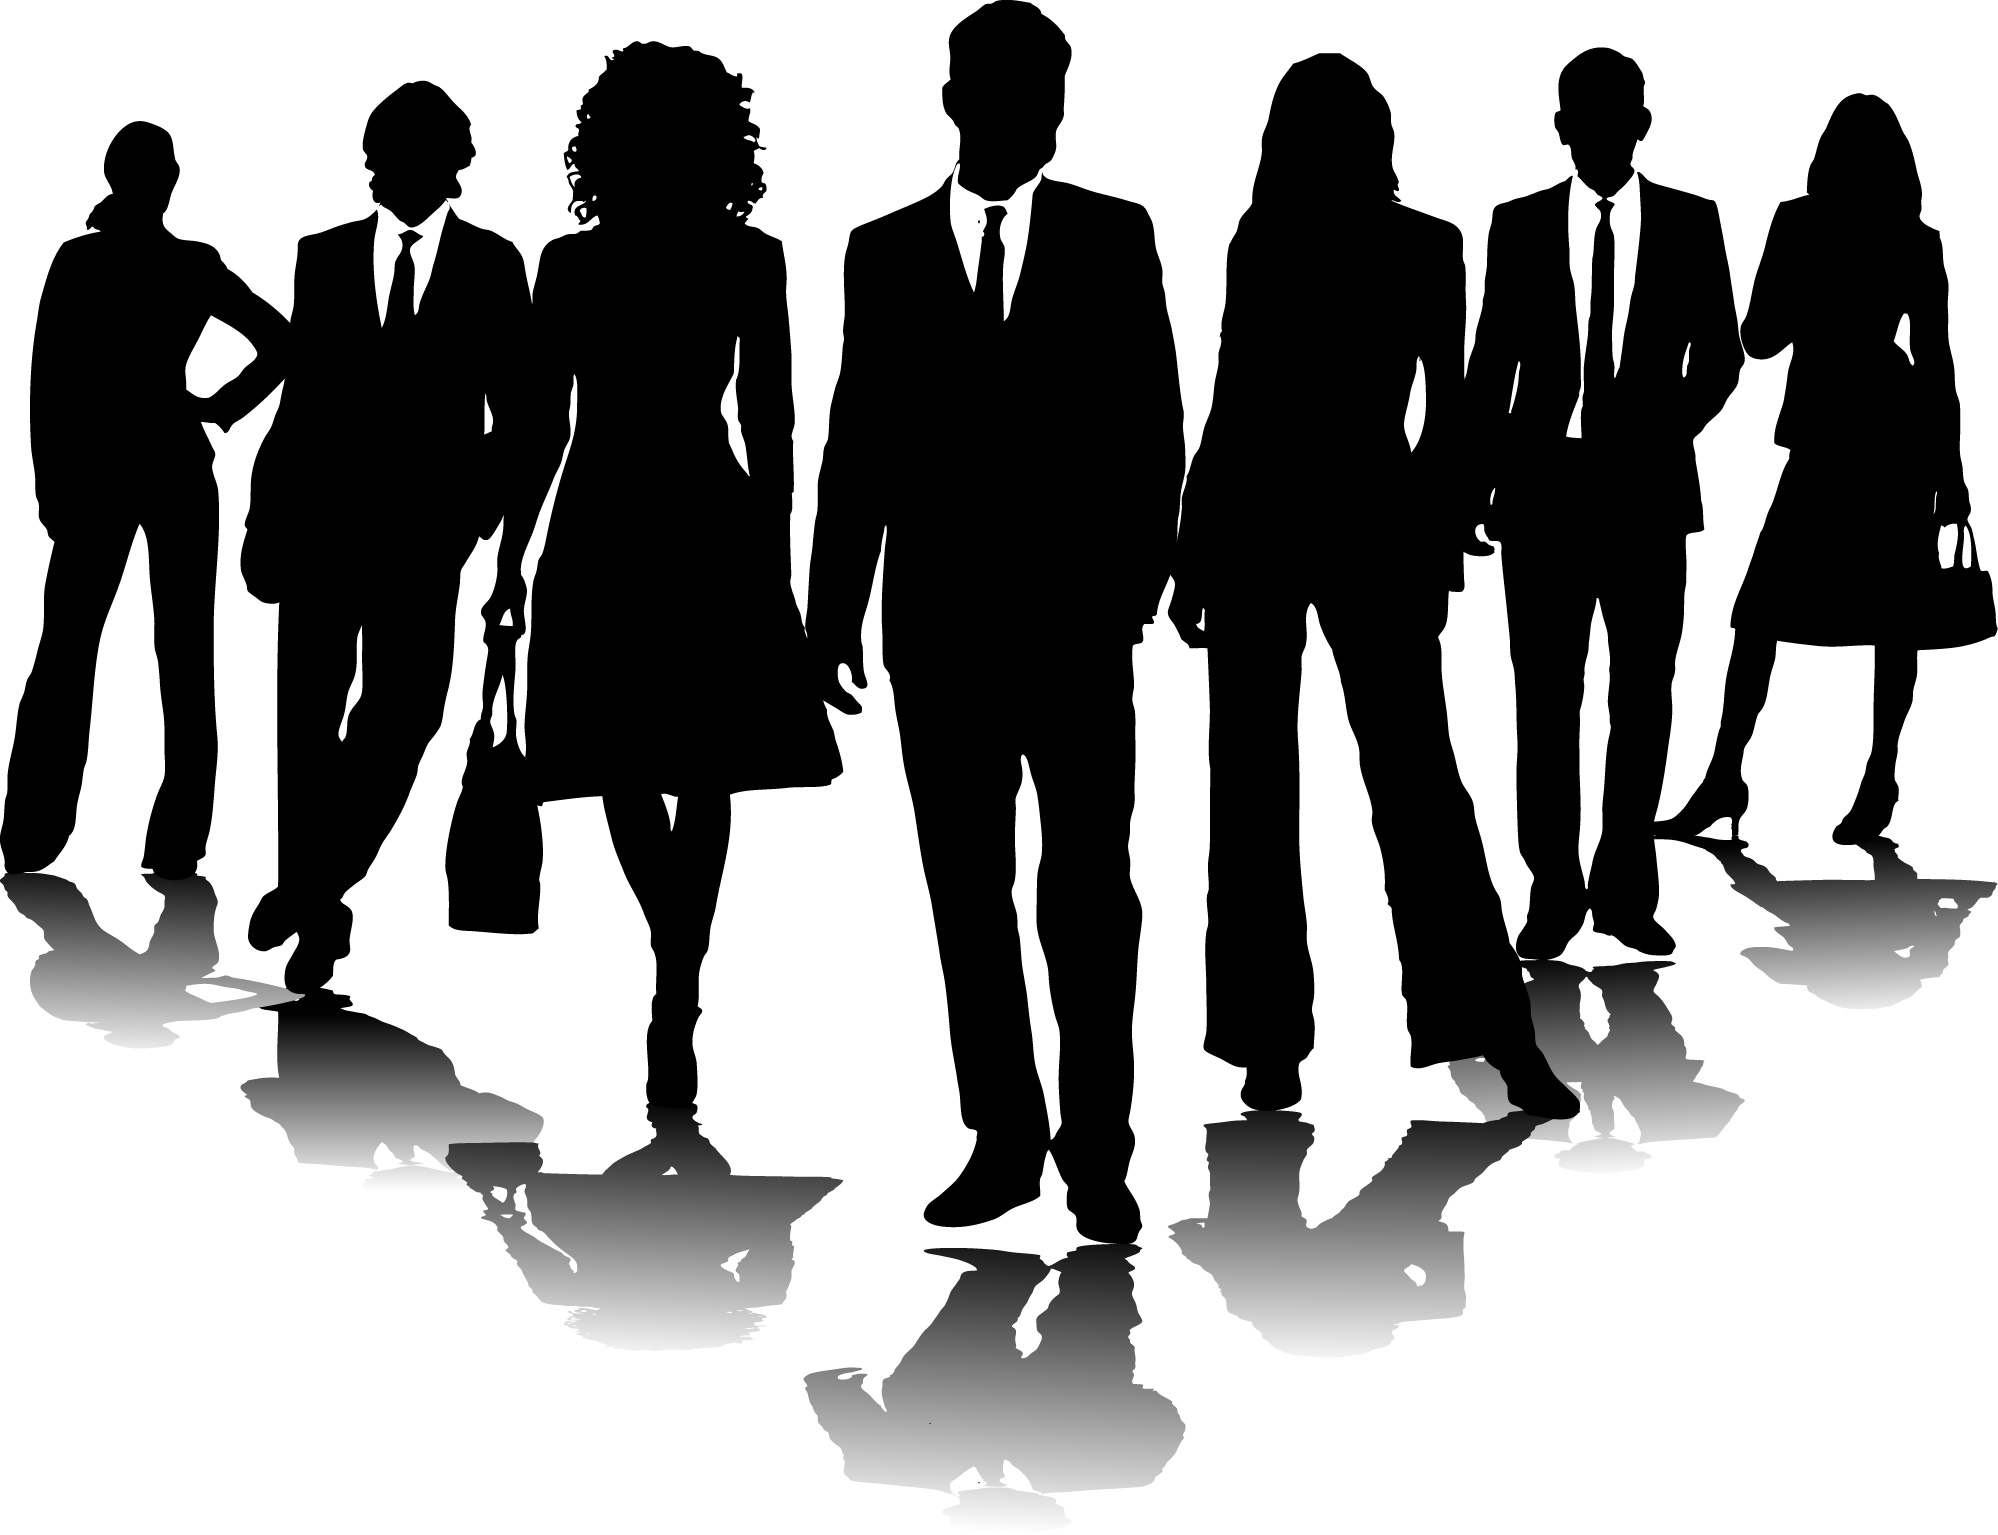 Clip Art People In Church | Clipart library - Free Clipart Images